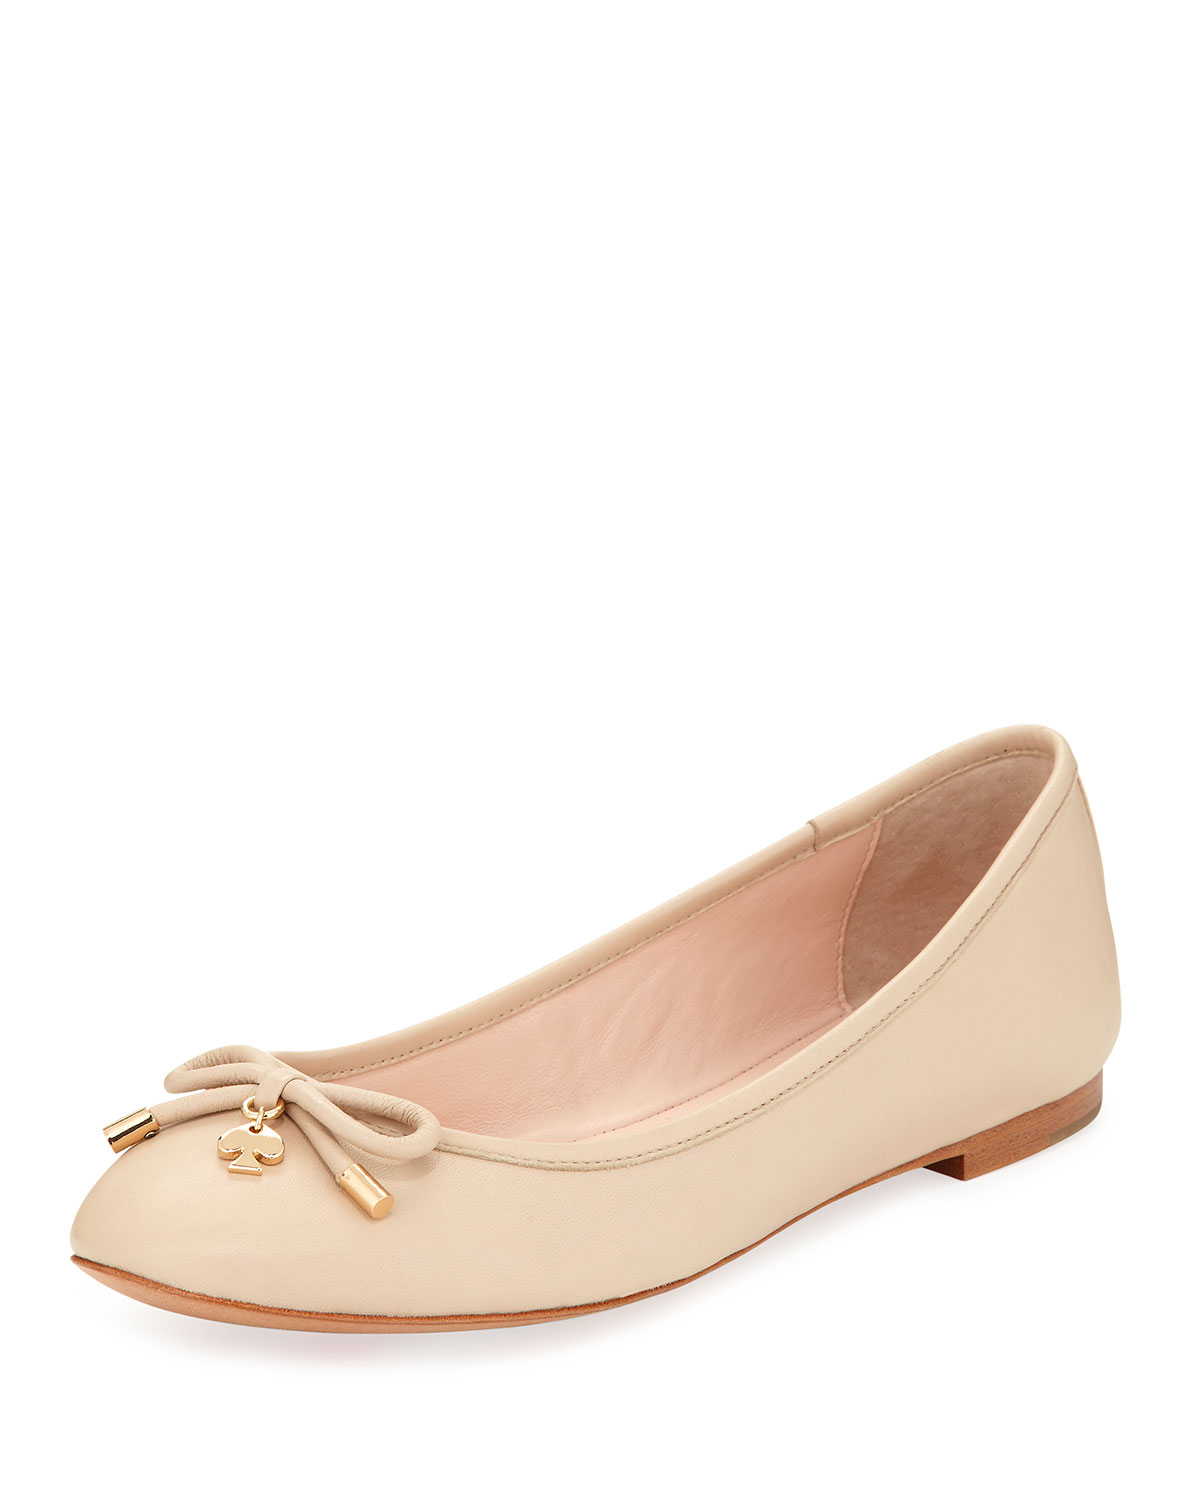 e1dcc4a37ba9 kate spade new york willa classic leather Ballet Flats